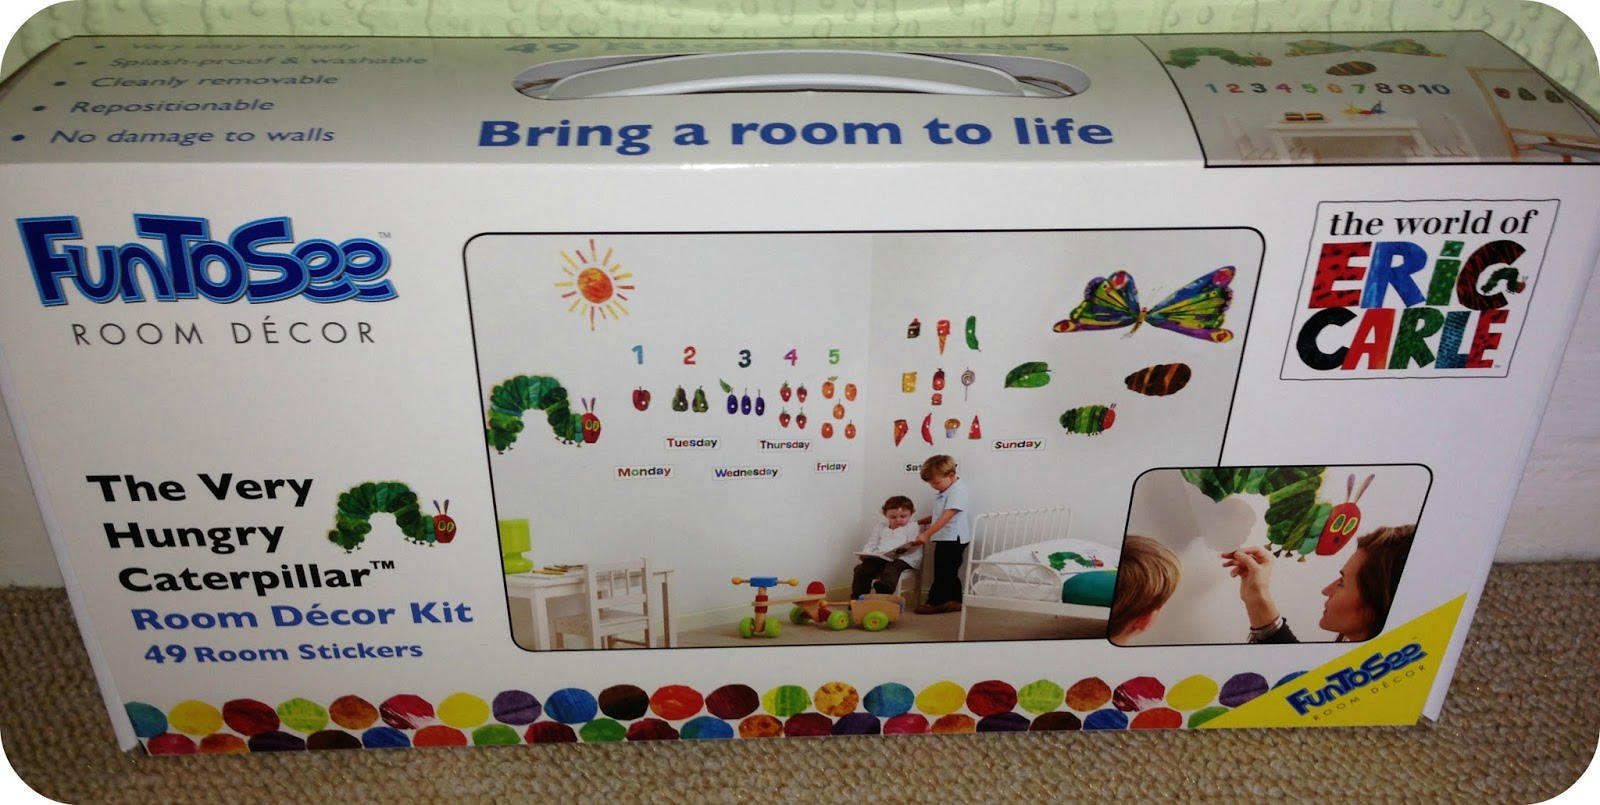 Very Hungry Caterpillar Wall Stickers Life Unexpected August 2013